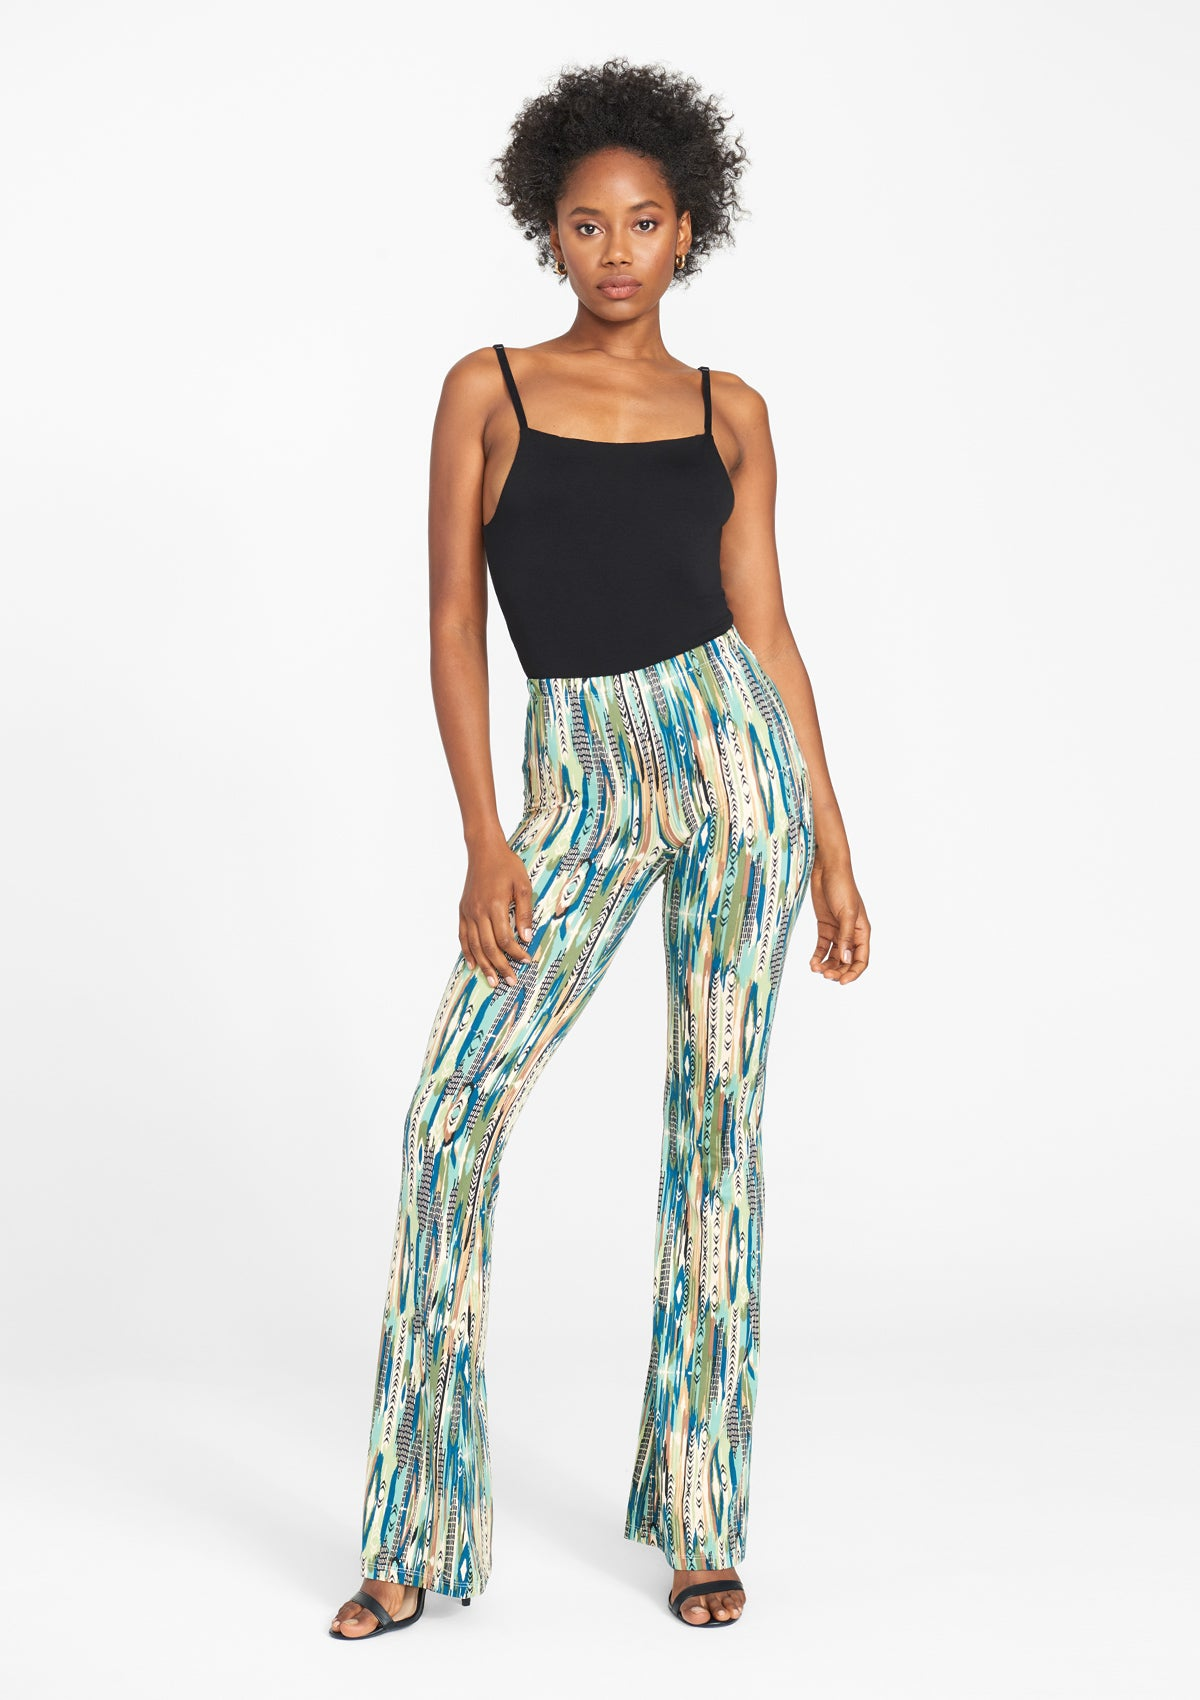 Alloy Apparel Tall Elana Printed Flare Pants for Women in Mint Print Size S   Polyester